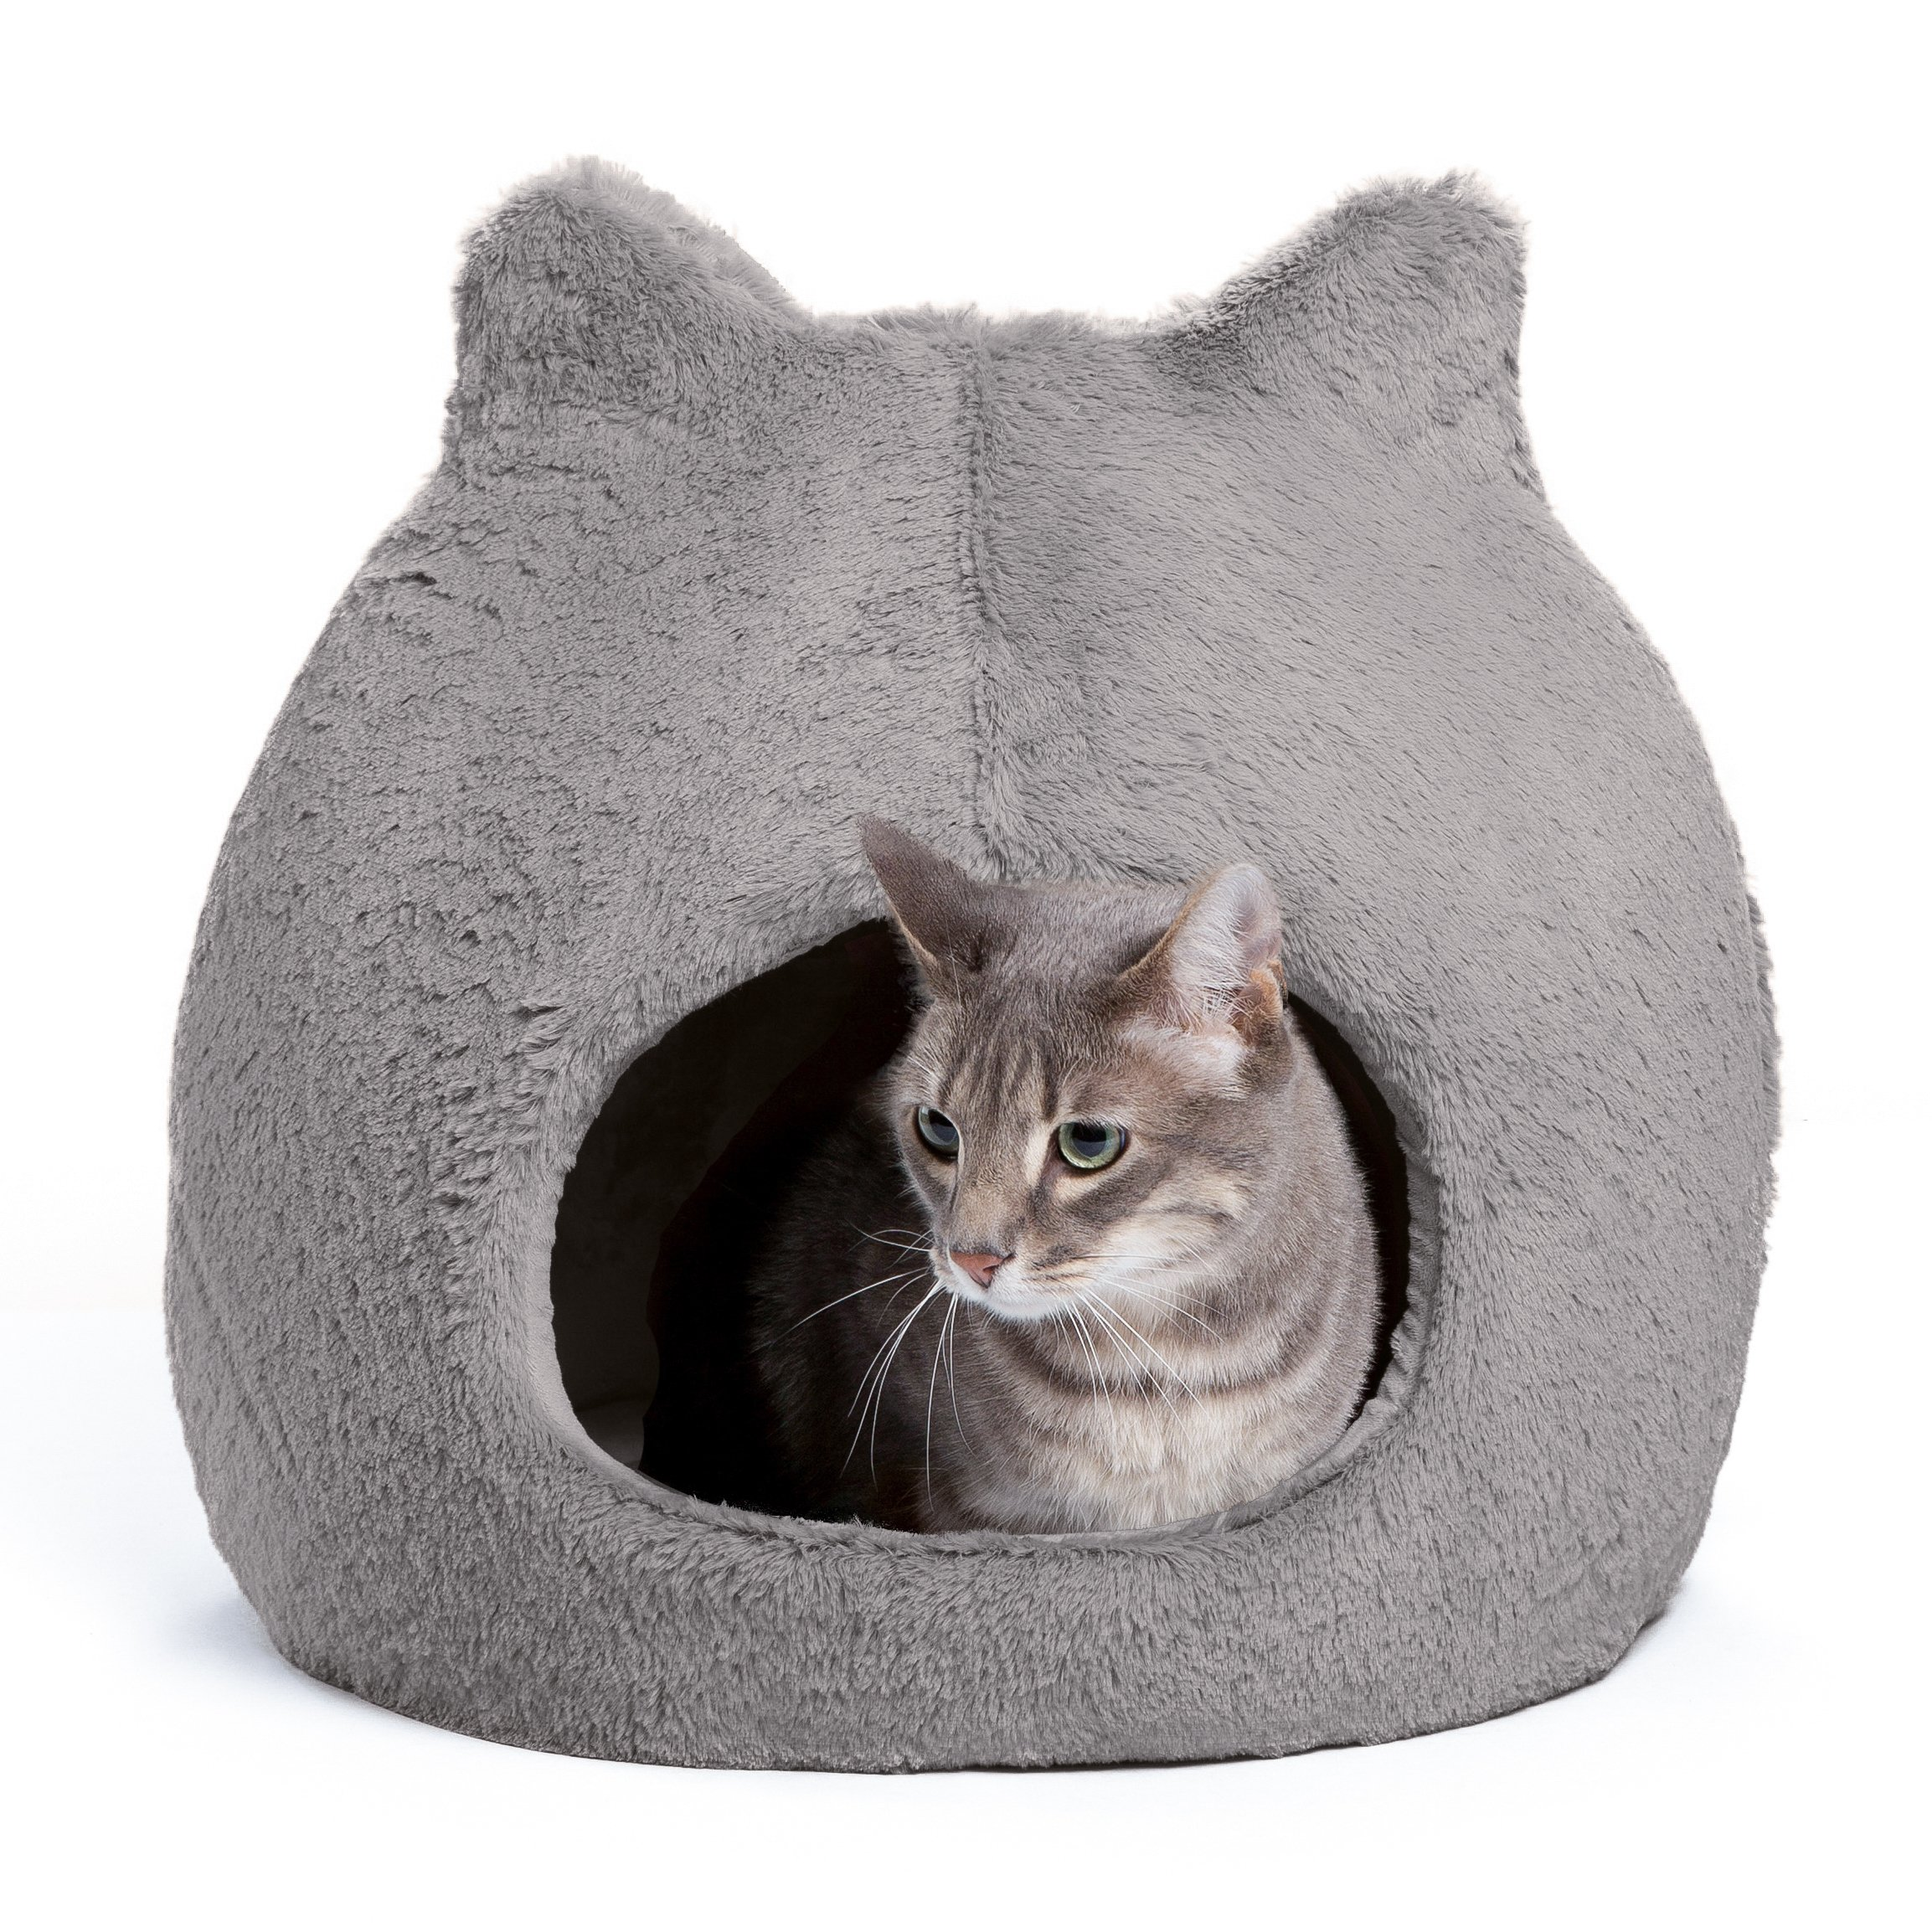 Best Friends by Sheri Meow Hut in Fur - 360 Coverage, Machine Washable Cat/Dog Bed, 19''x19''x20'' by Best Friends by Sheri